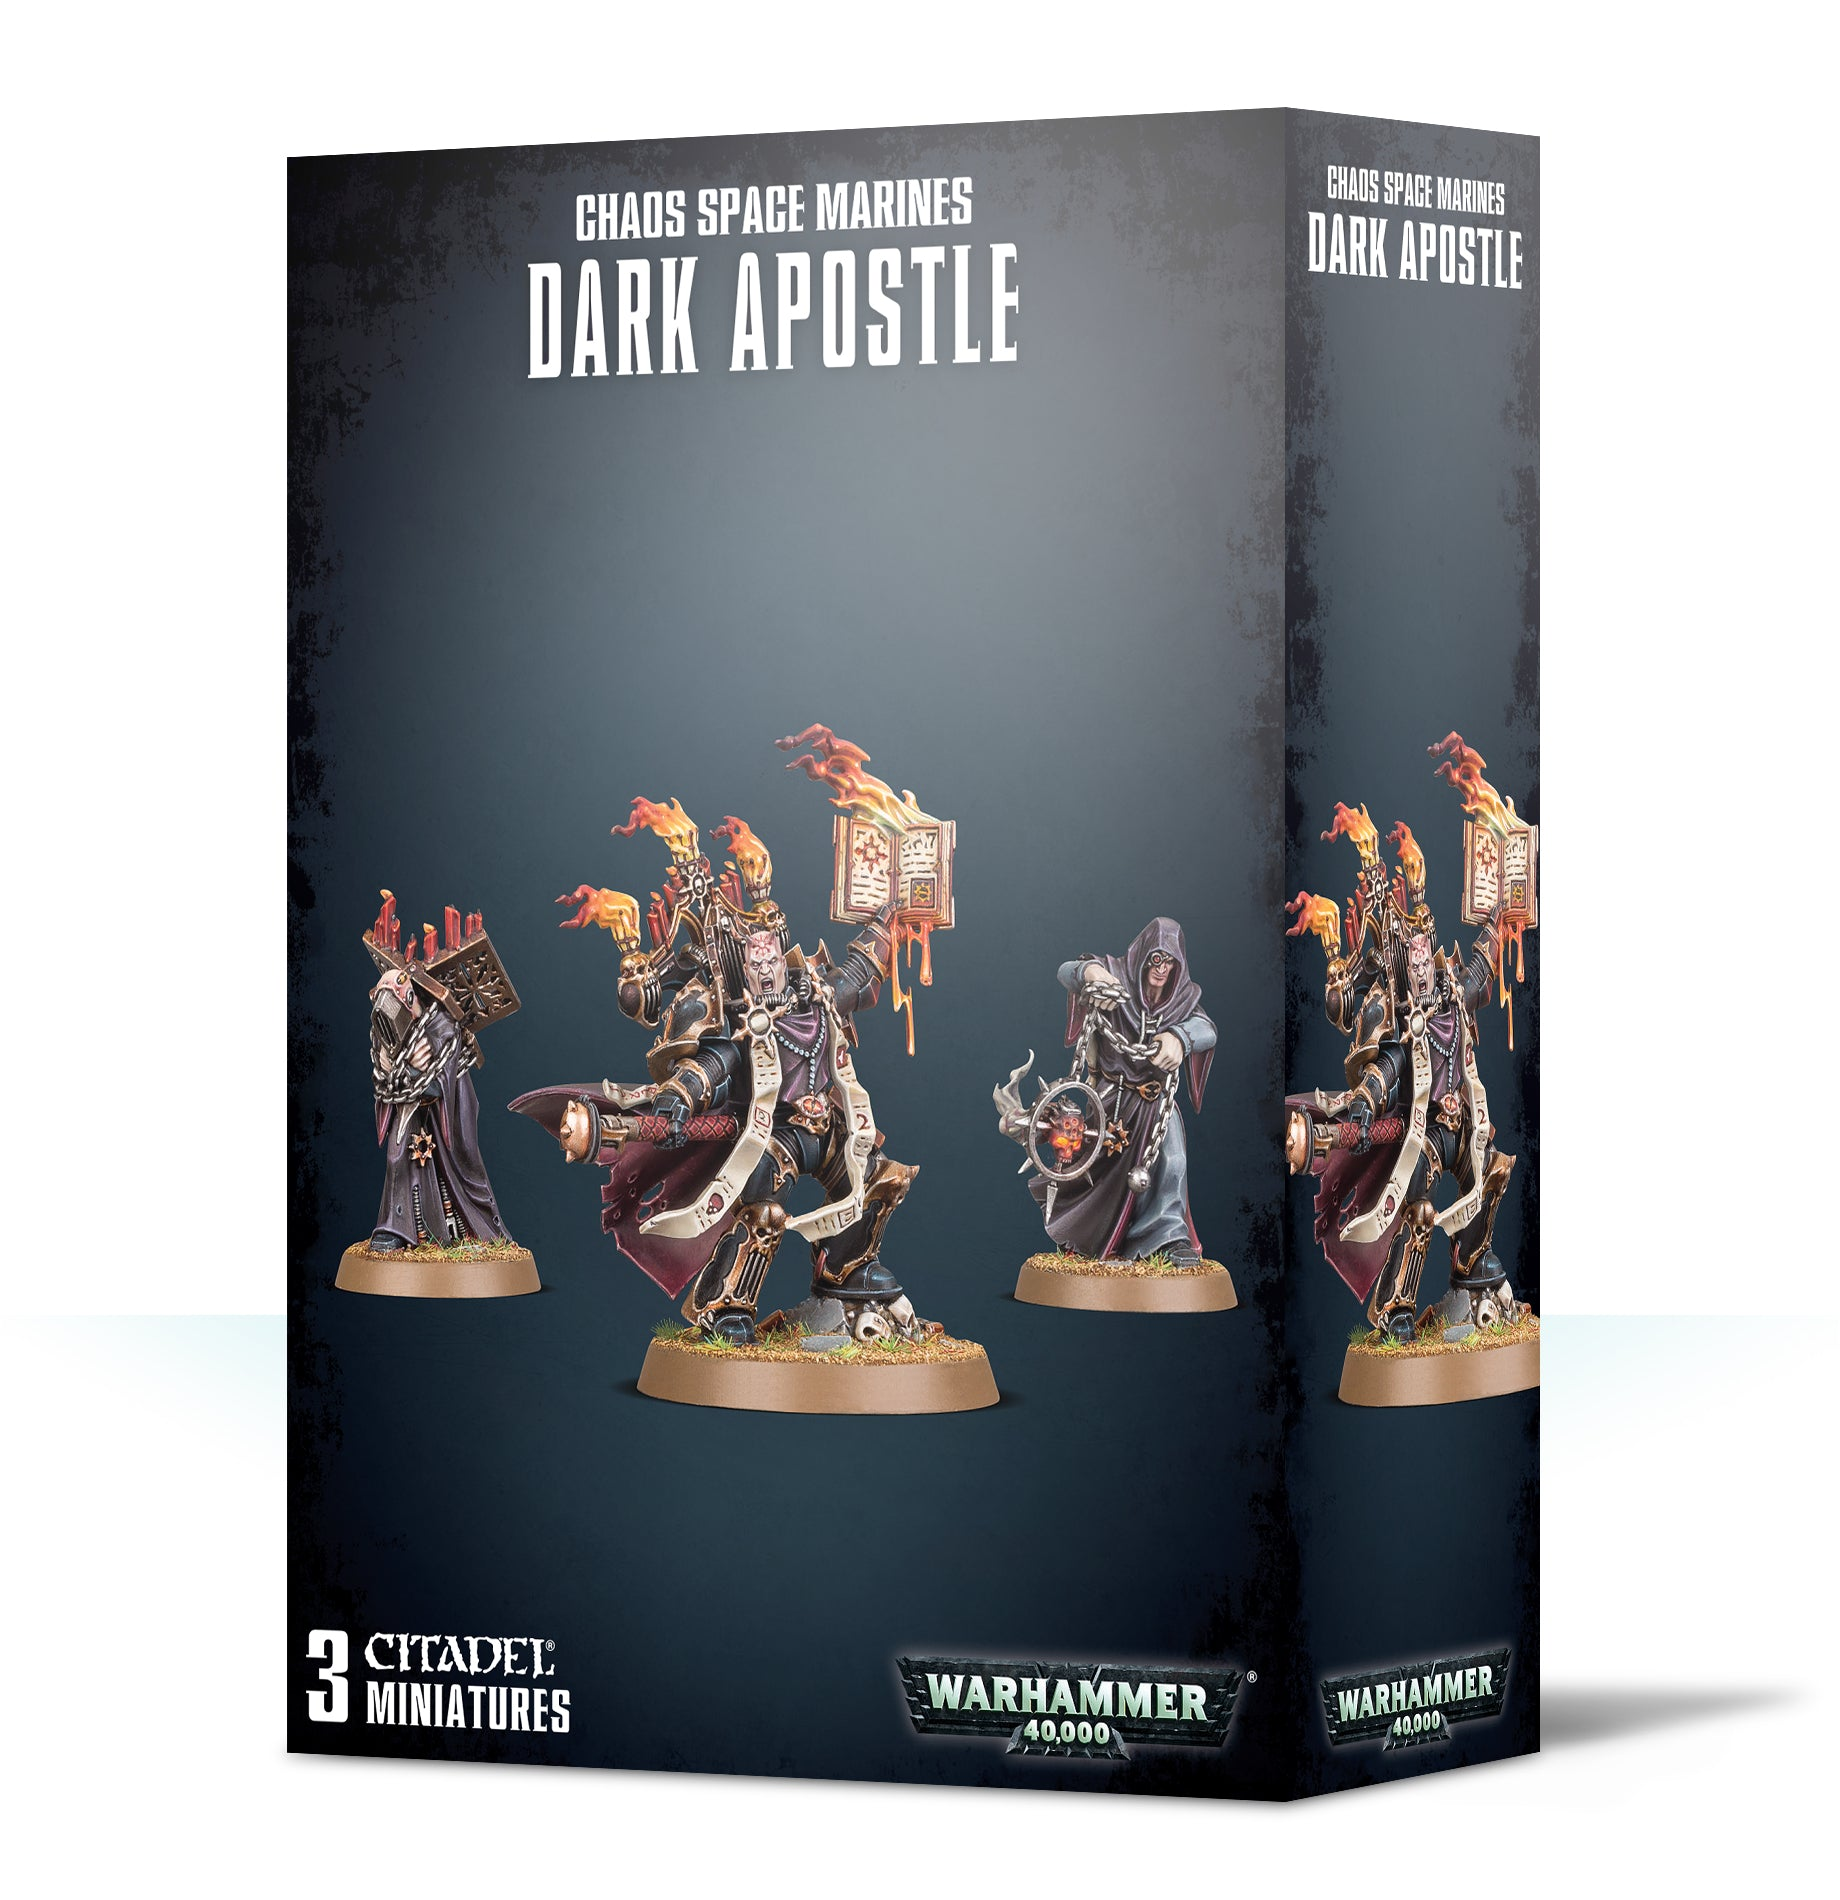 Warhammer 40,000: Chaos Space Marines - Dark Apostle | A&H Games - Monroe